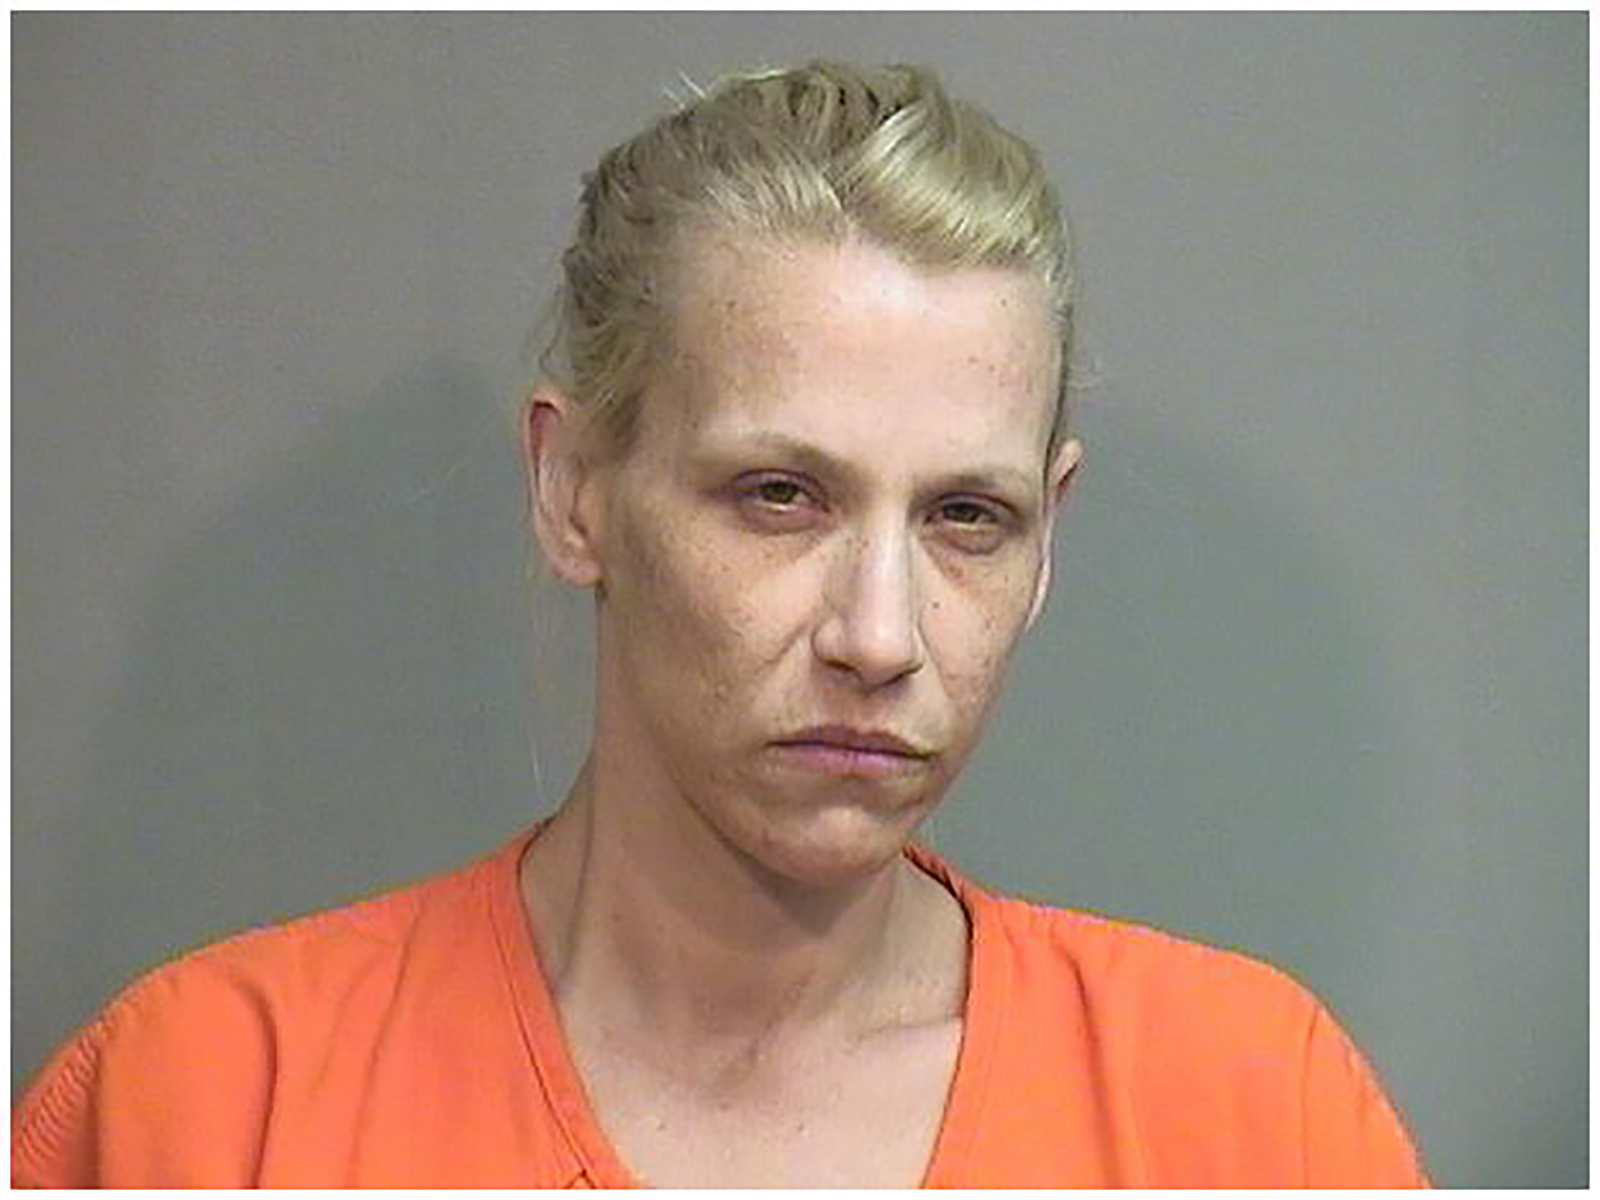 AJ Freund was found in a shallow grave near Chicago. His mother just pleaded guilty to the boy's murder